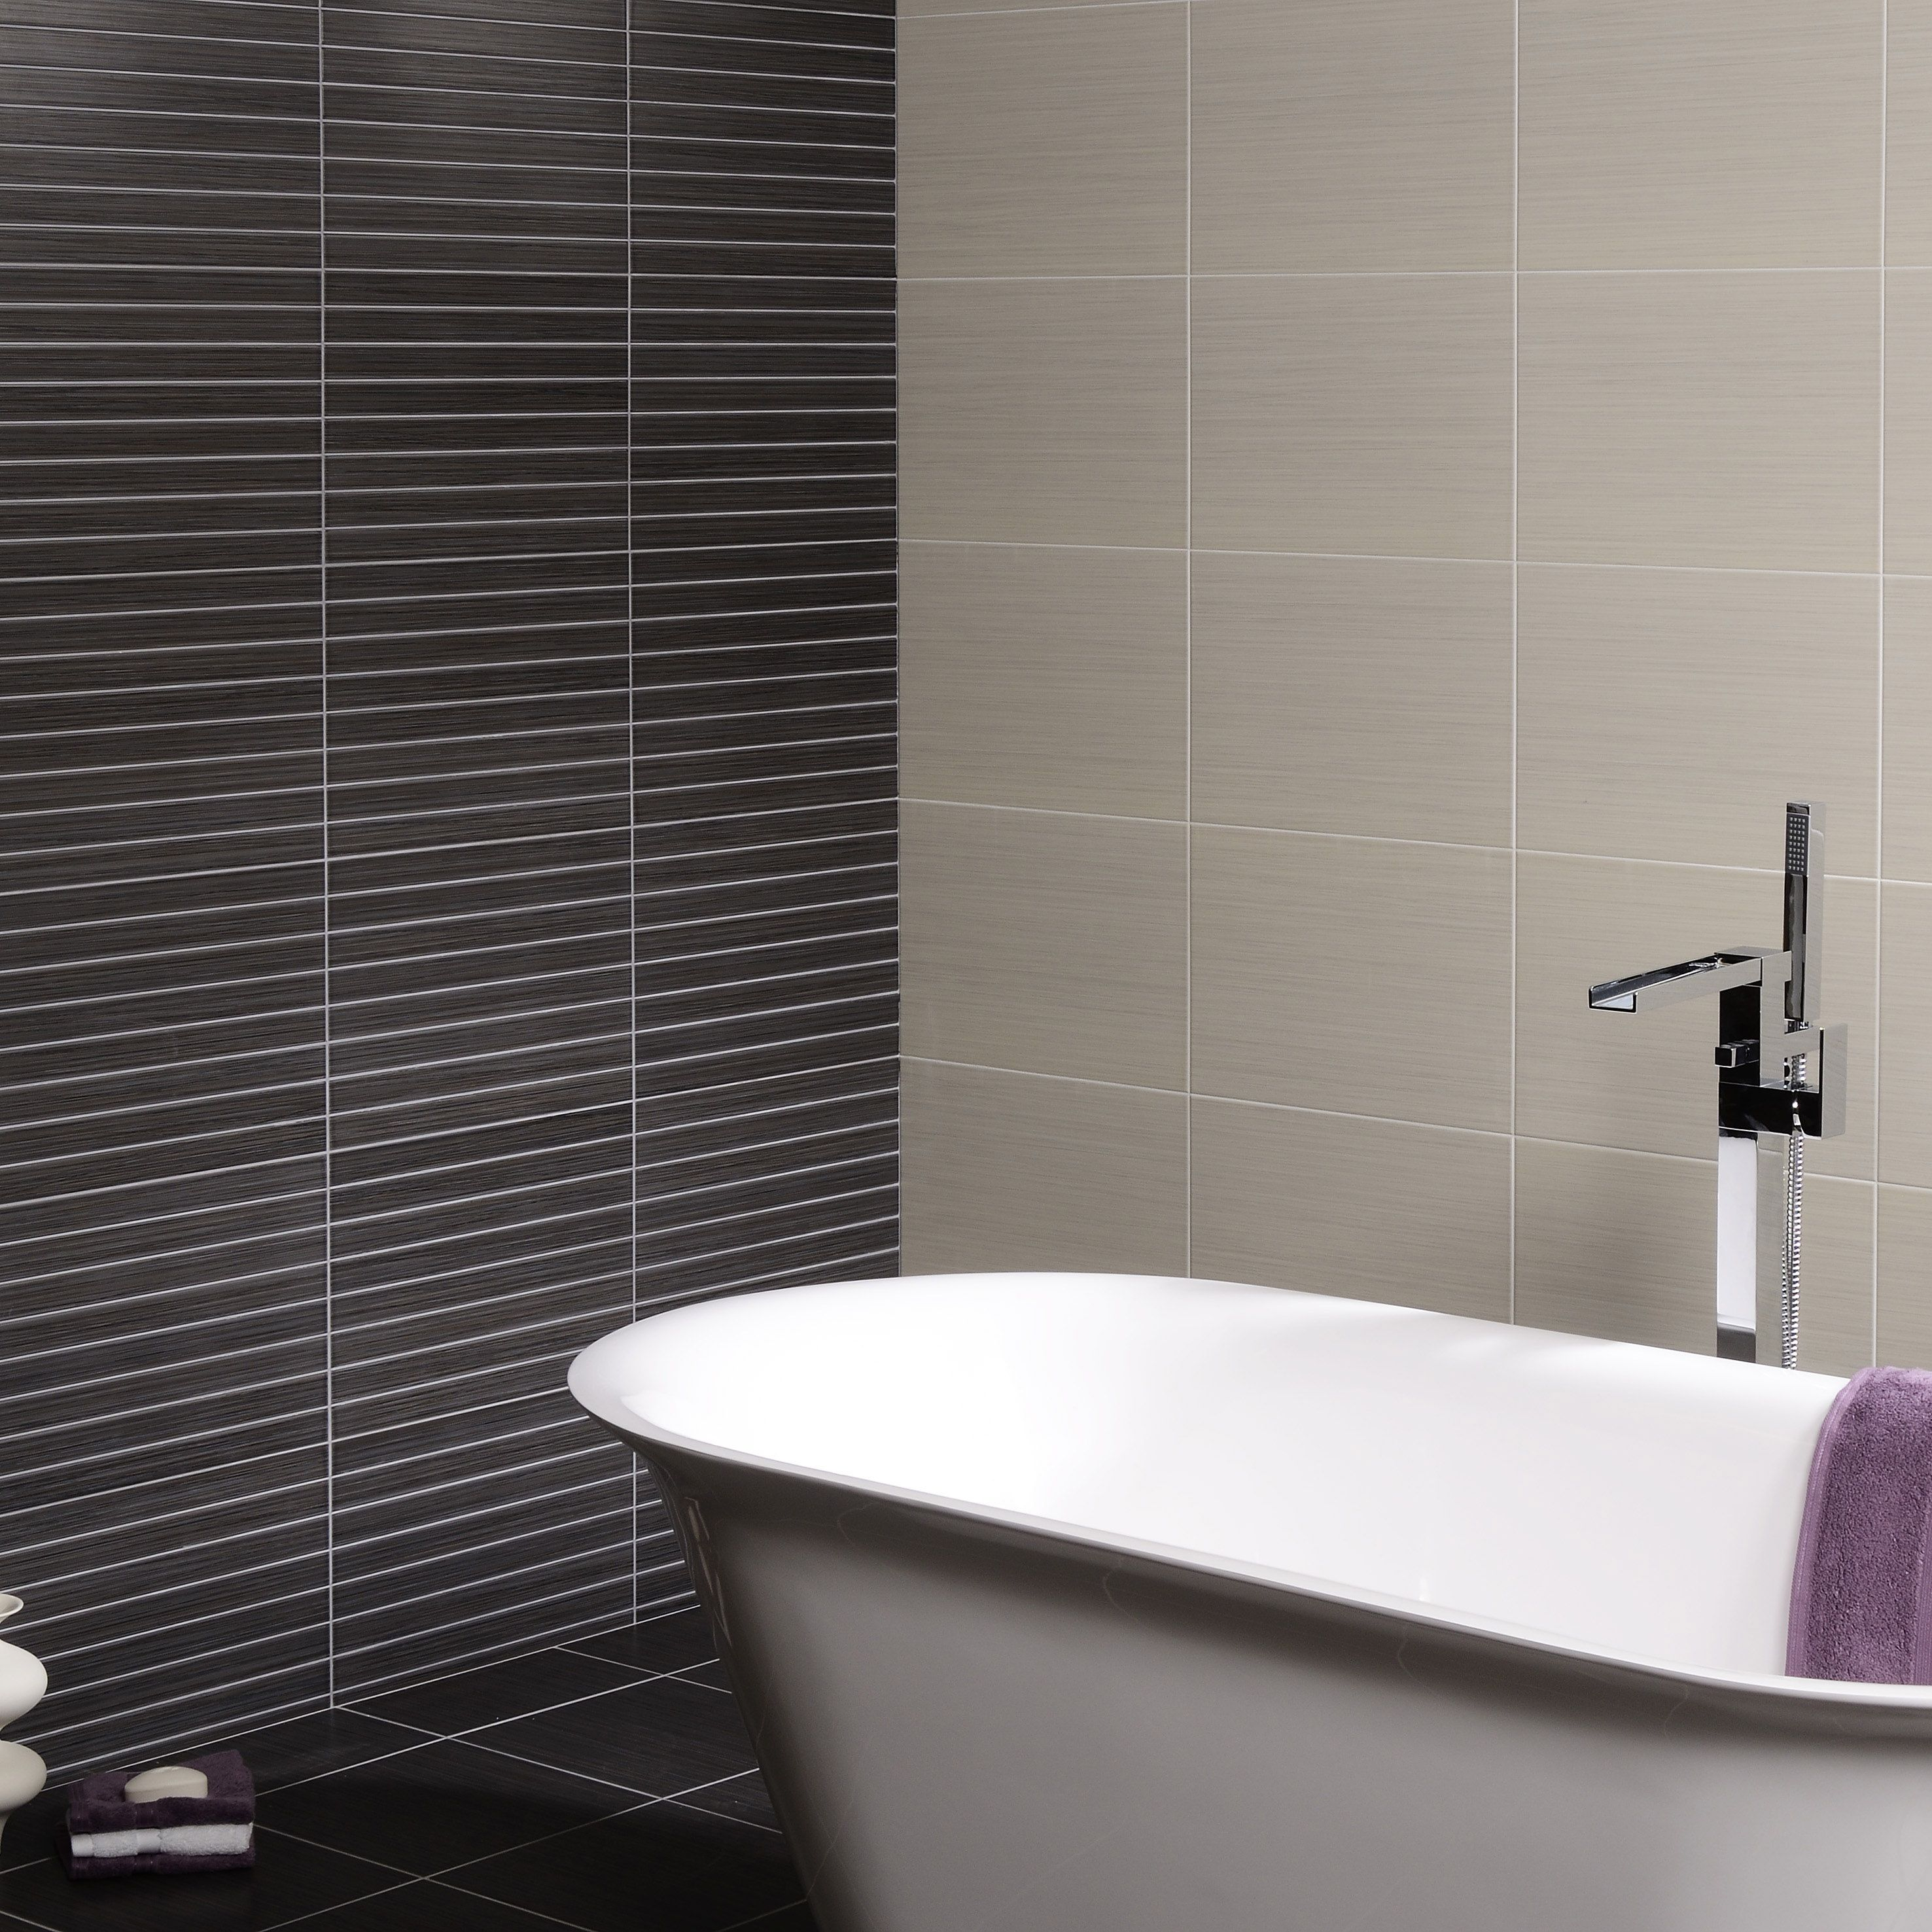 Bathroom tile designs one of 4 total snapshots metallic bathroom tile - Find This Pin And More On Bathroom Renovation Idea S